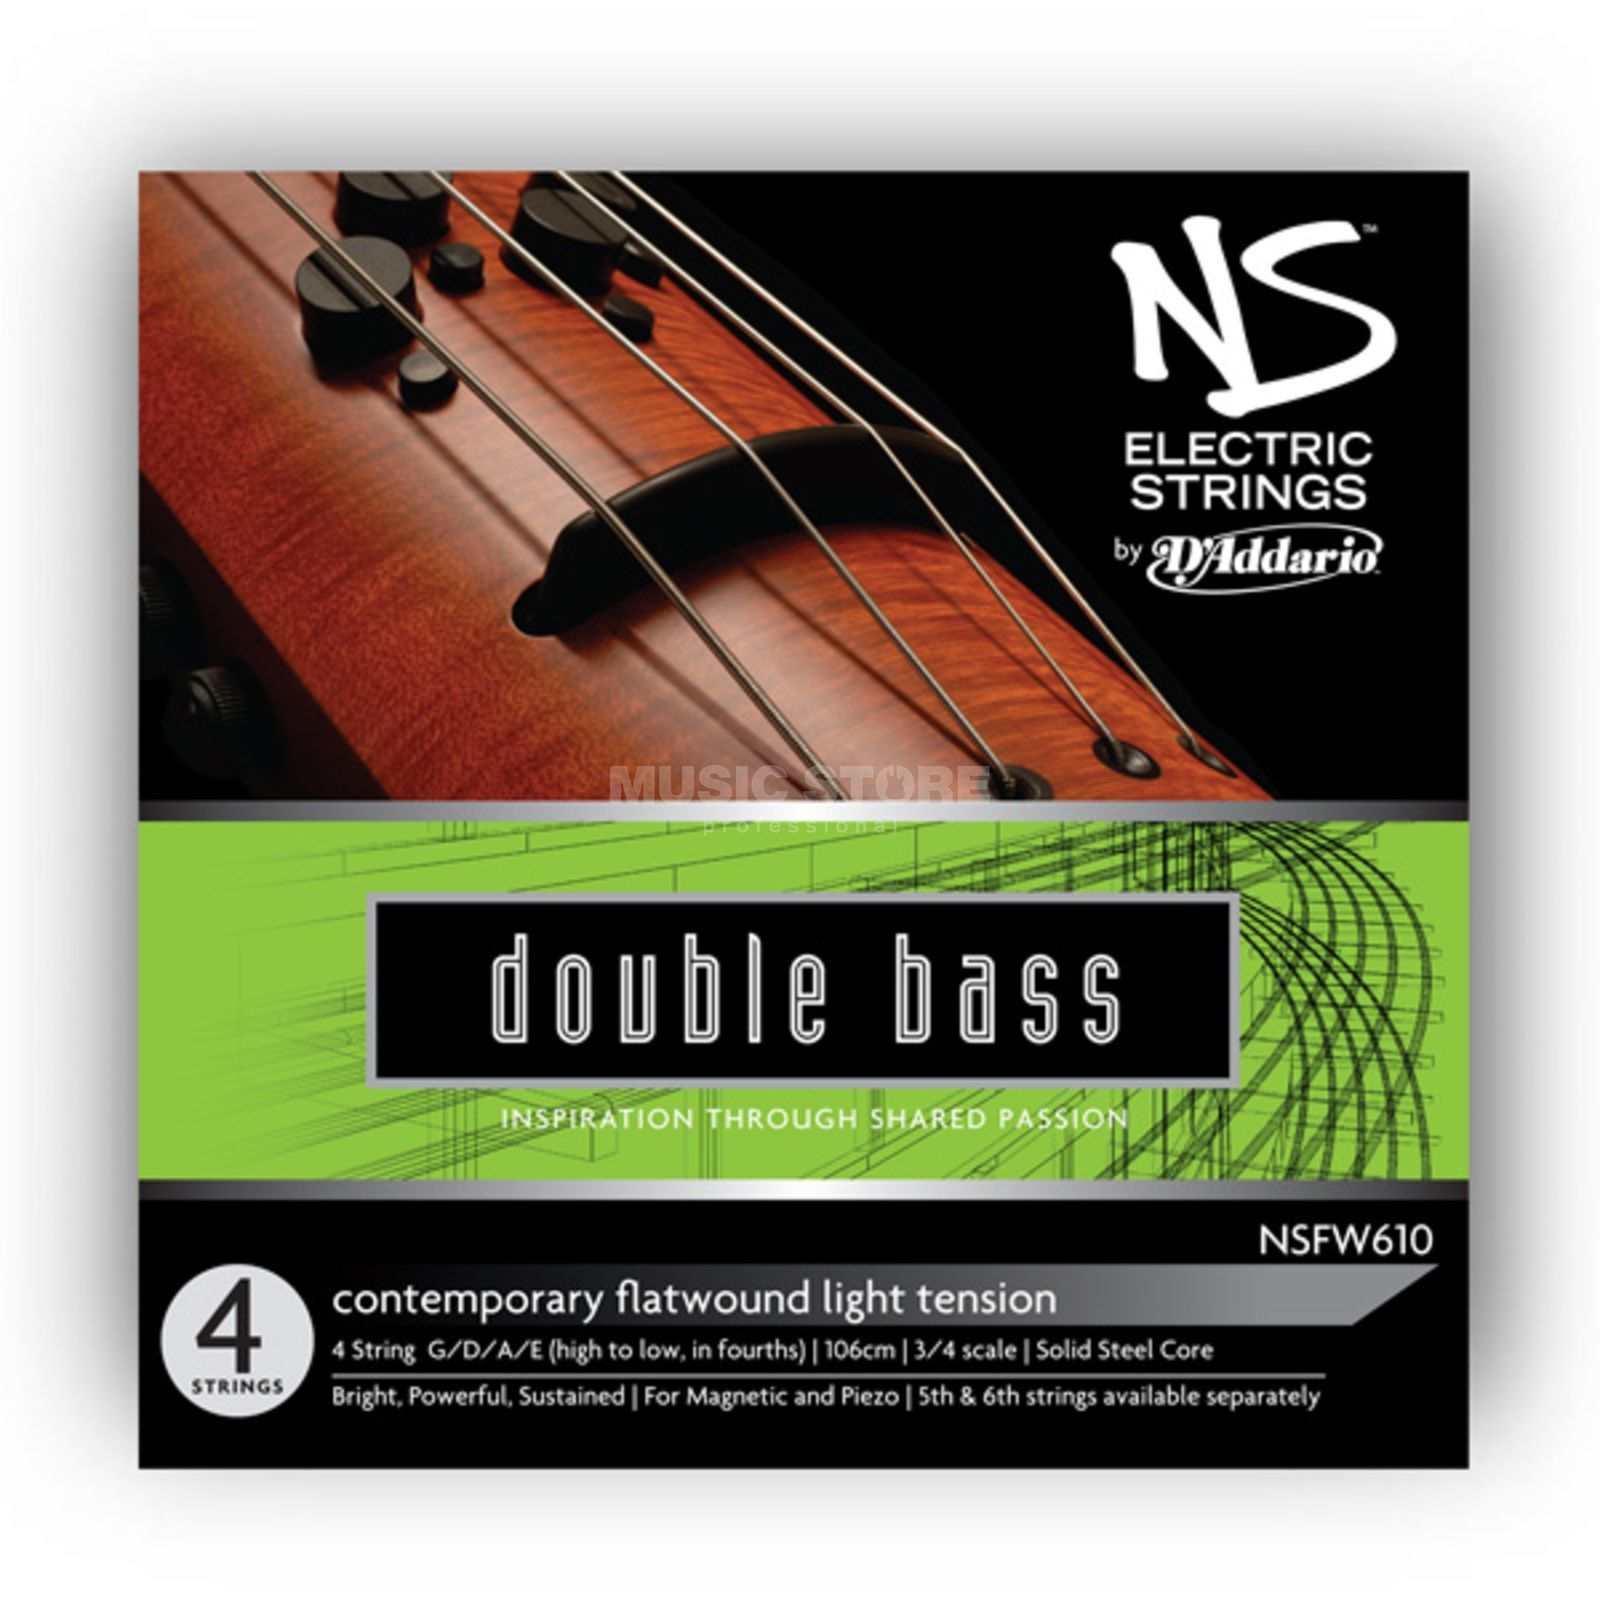 D'Addario NSFW610 E-Contemporary Set 3/4 Scale, Medium Tension Изображение товара